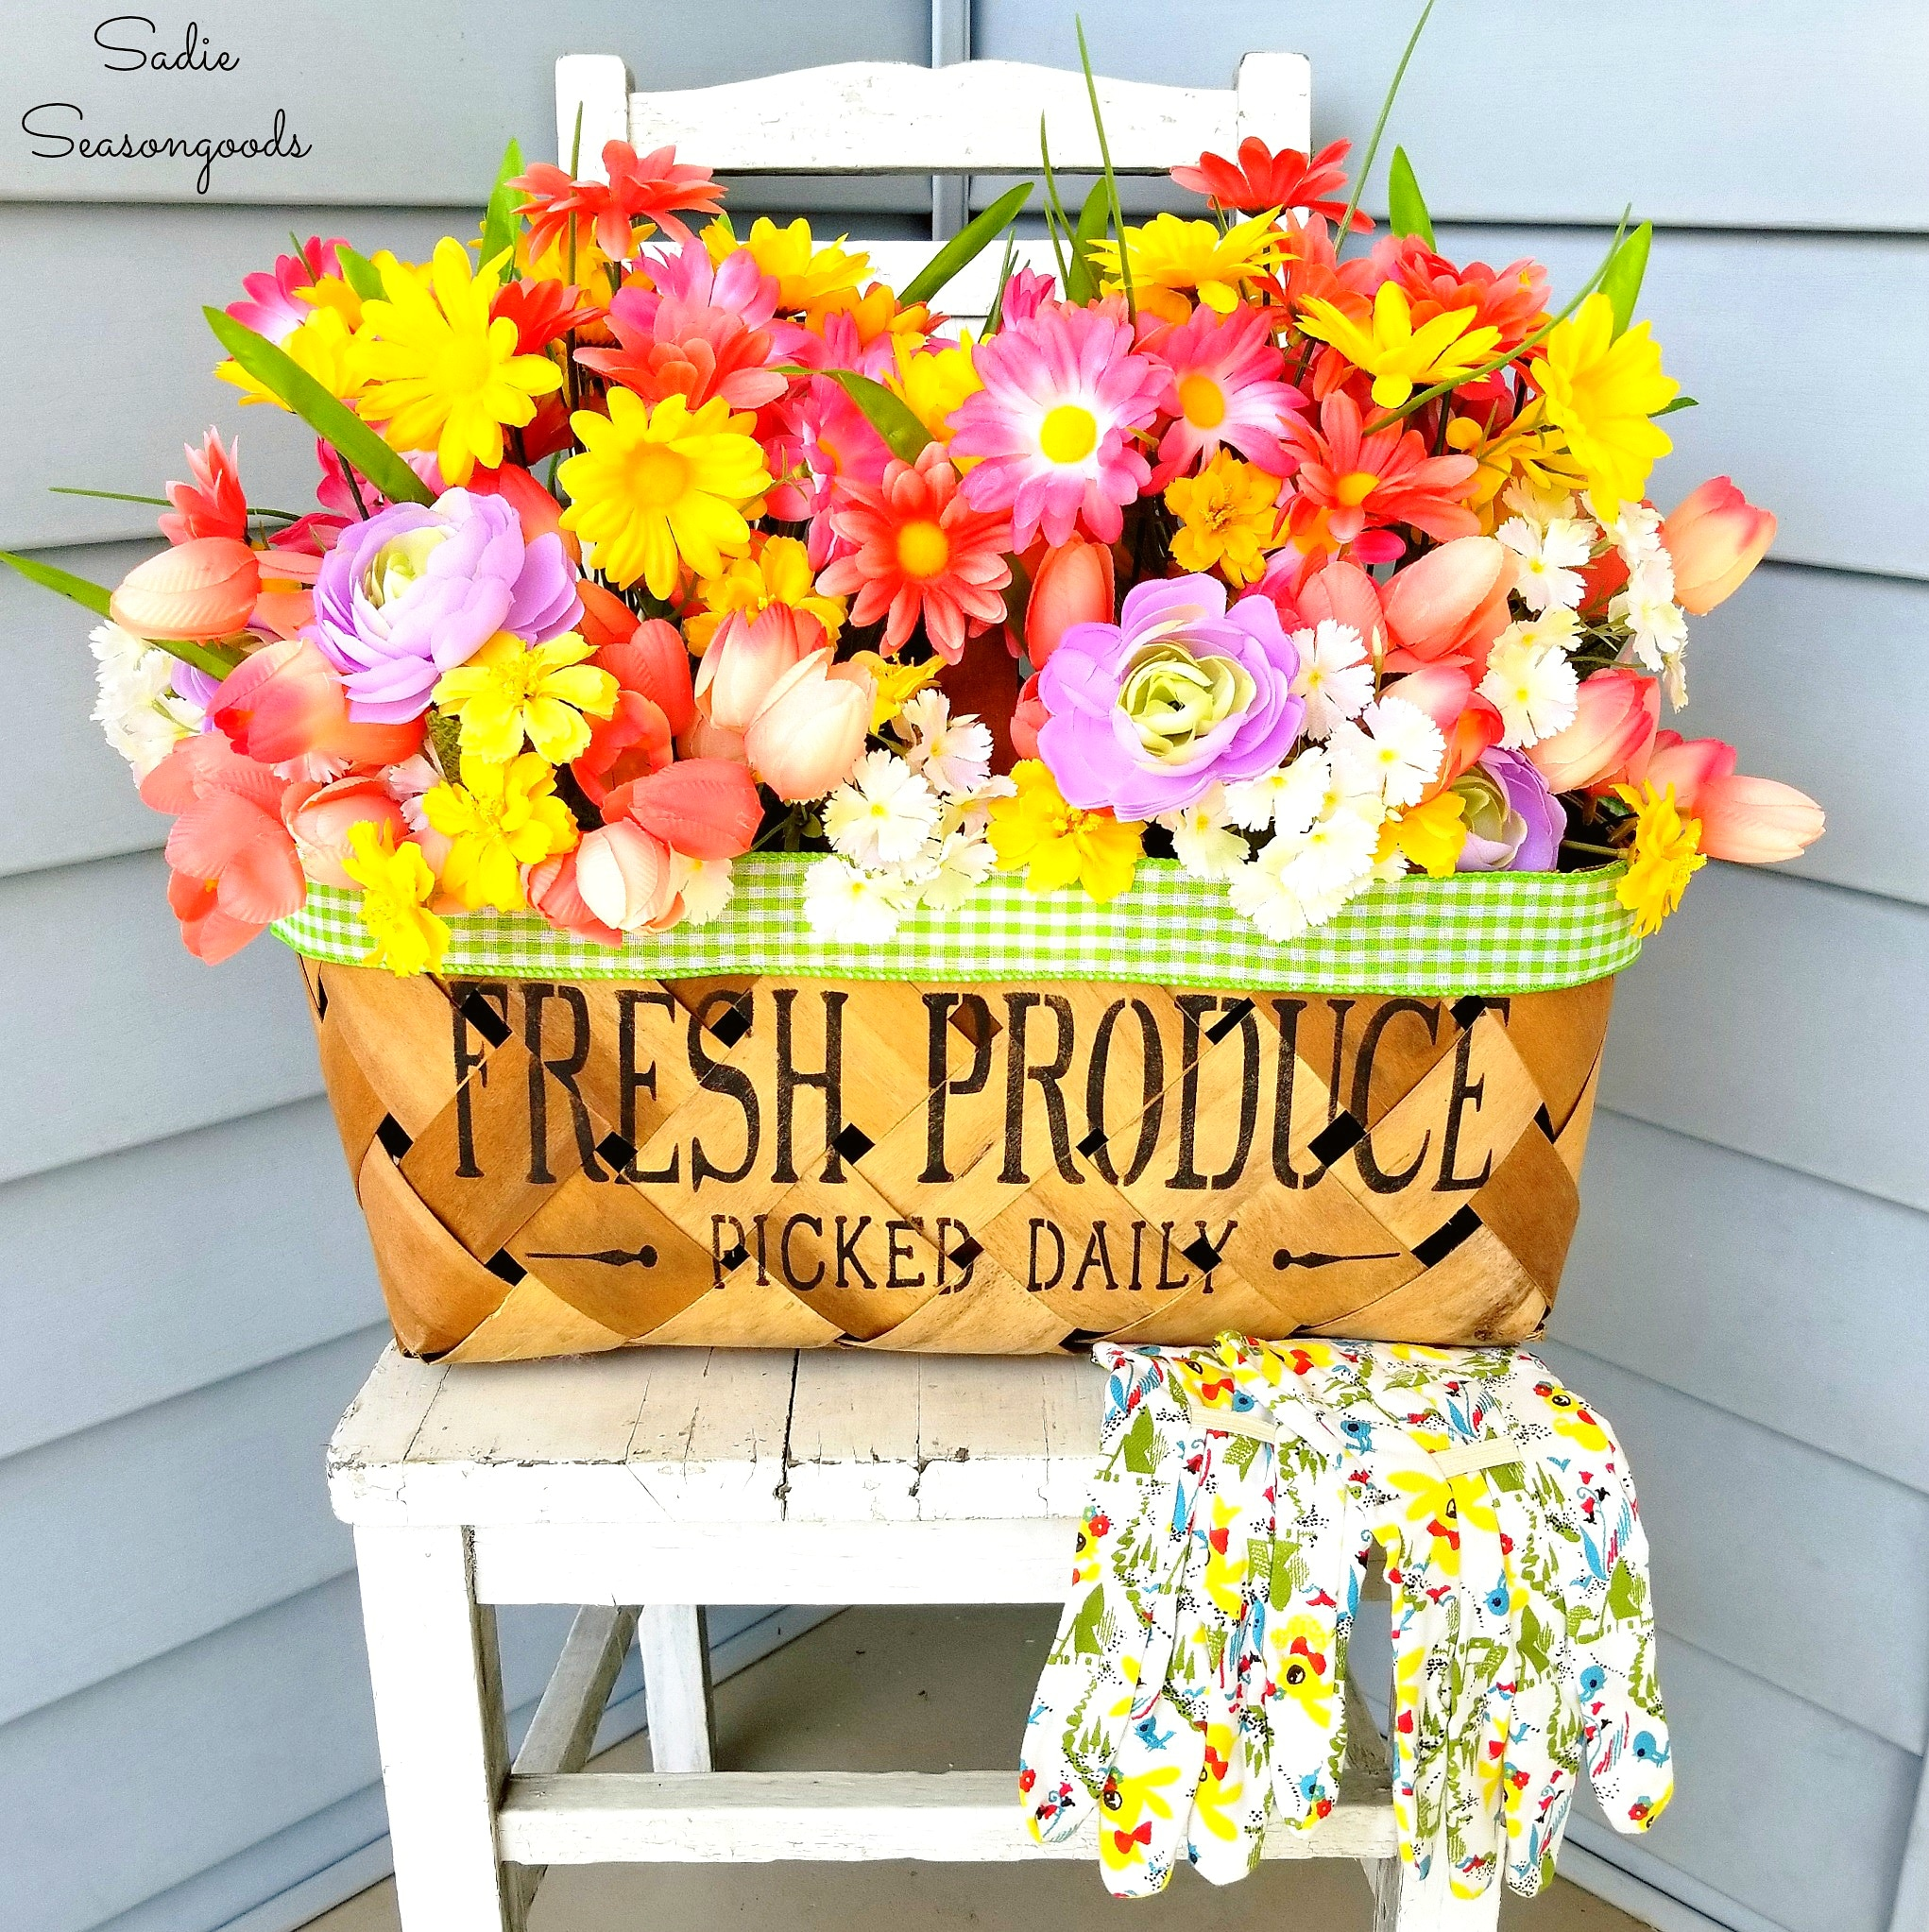 This adorable woven basket with bright flowers adds color to this front porch chair.